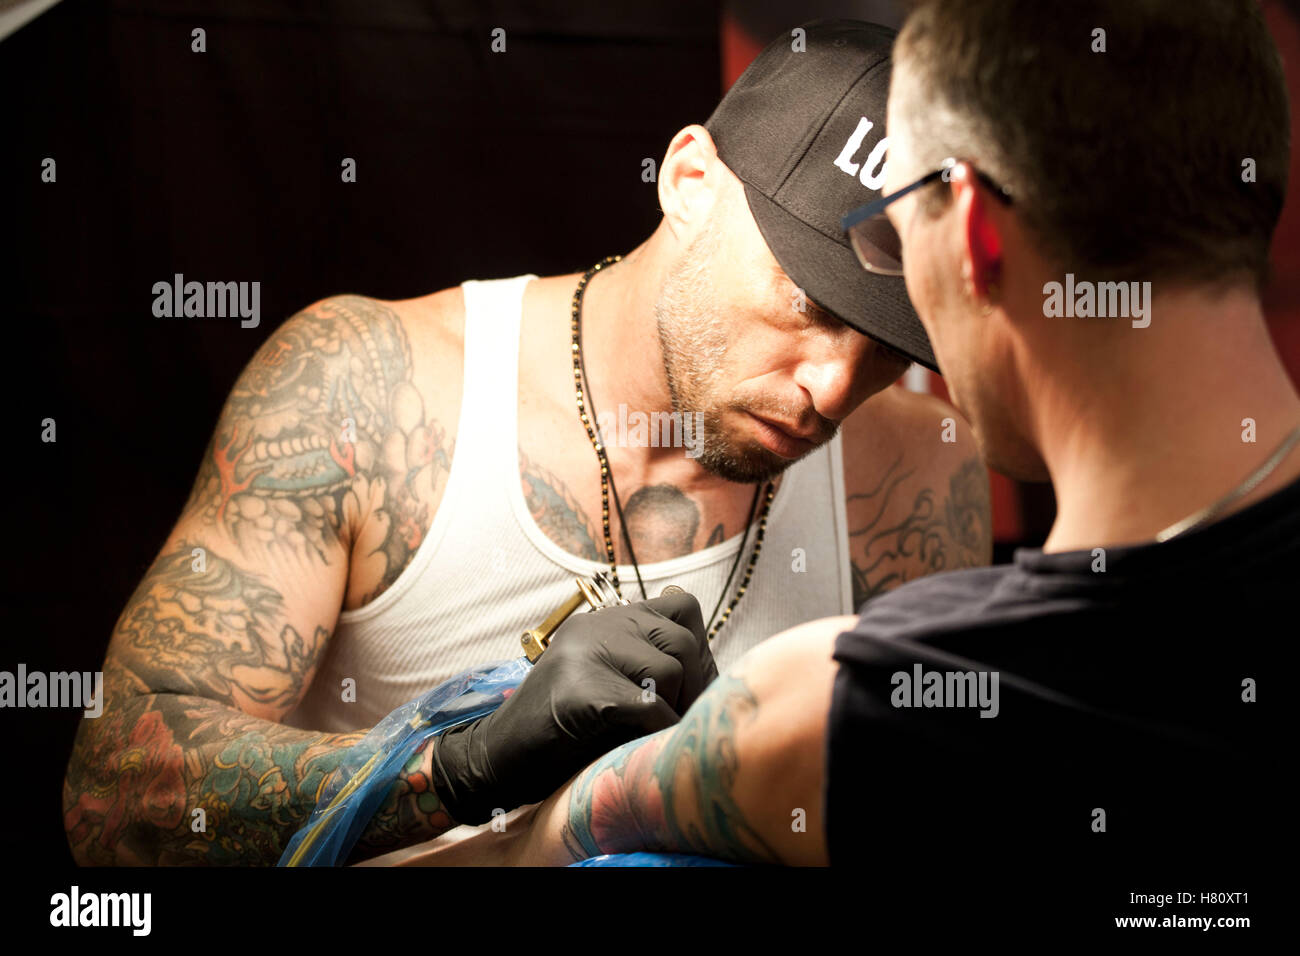 Tattoo artist Ami James attends the tattoo convention Copenhagen Ink 2013. Stock Photo